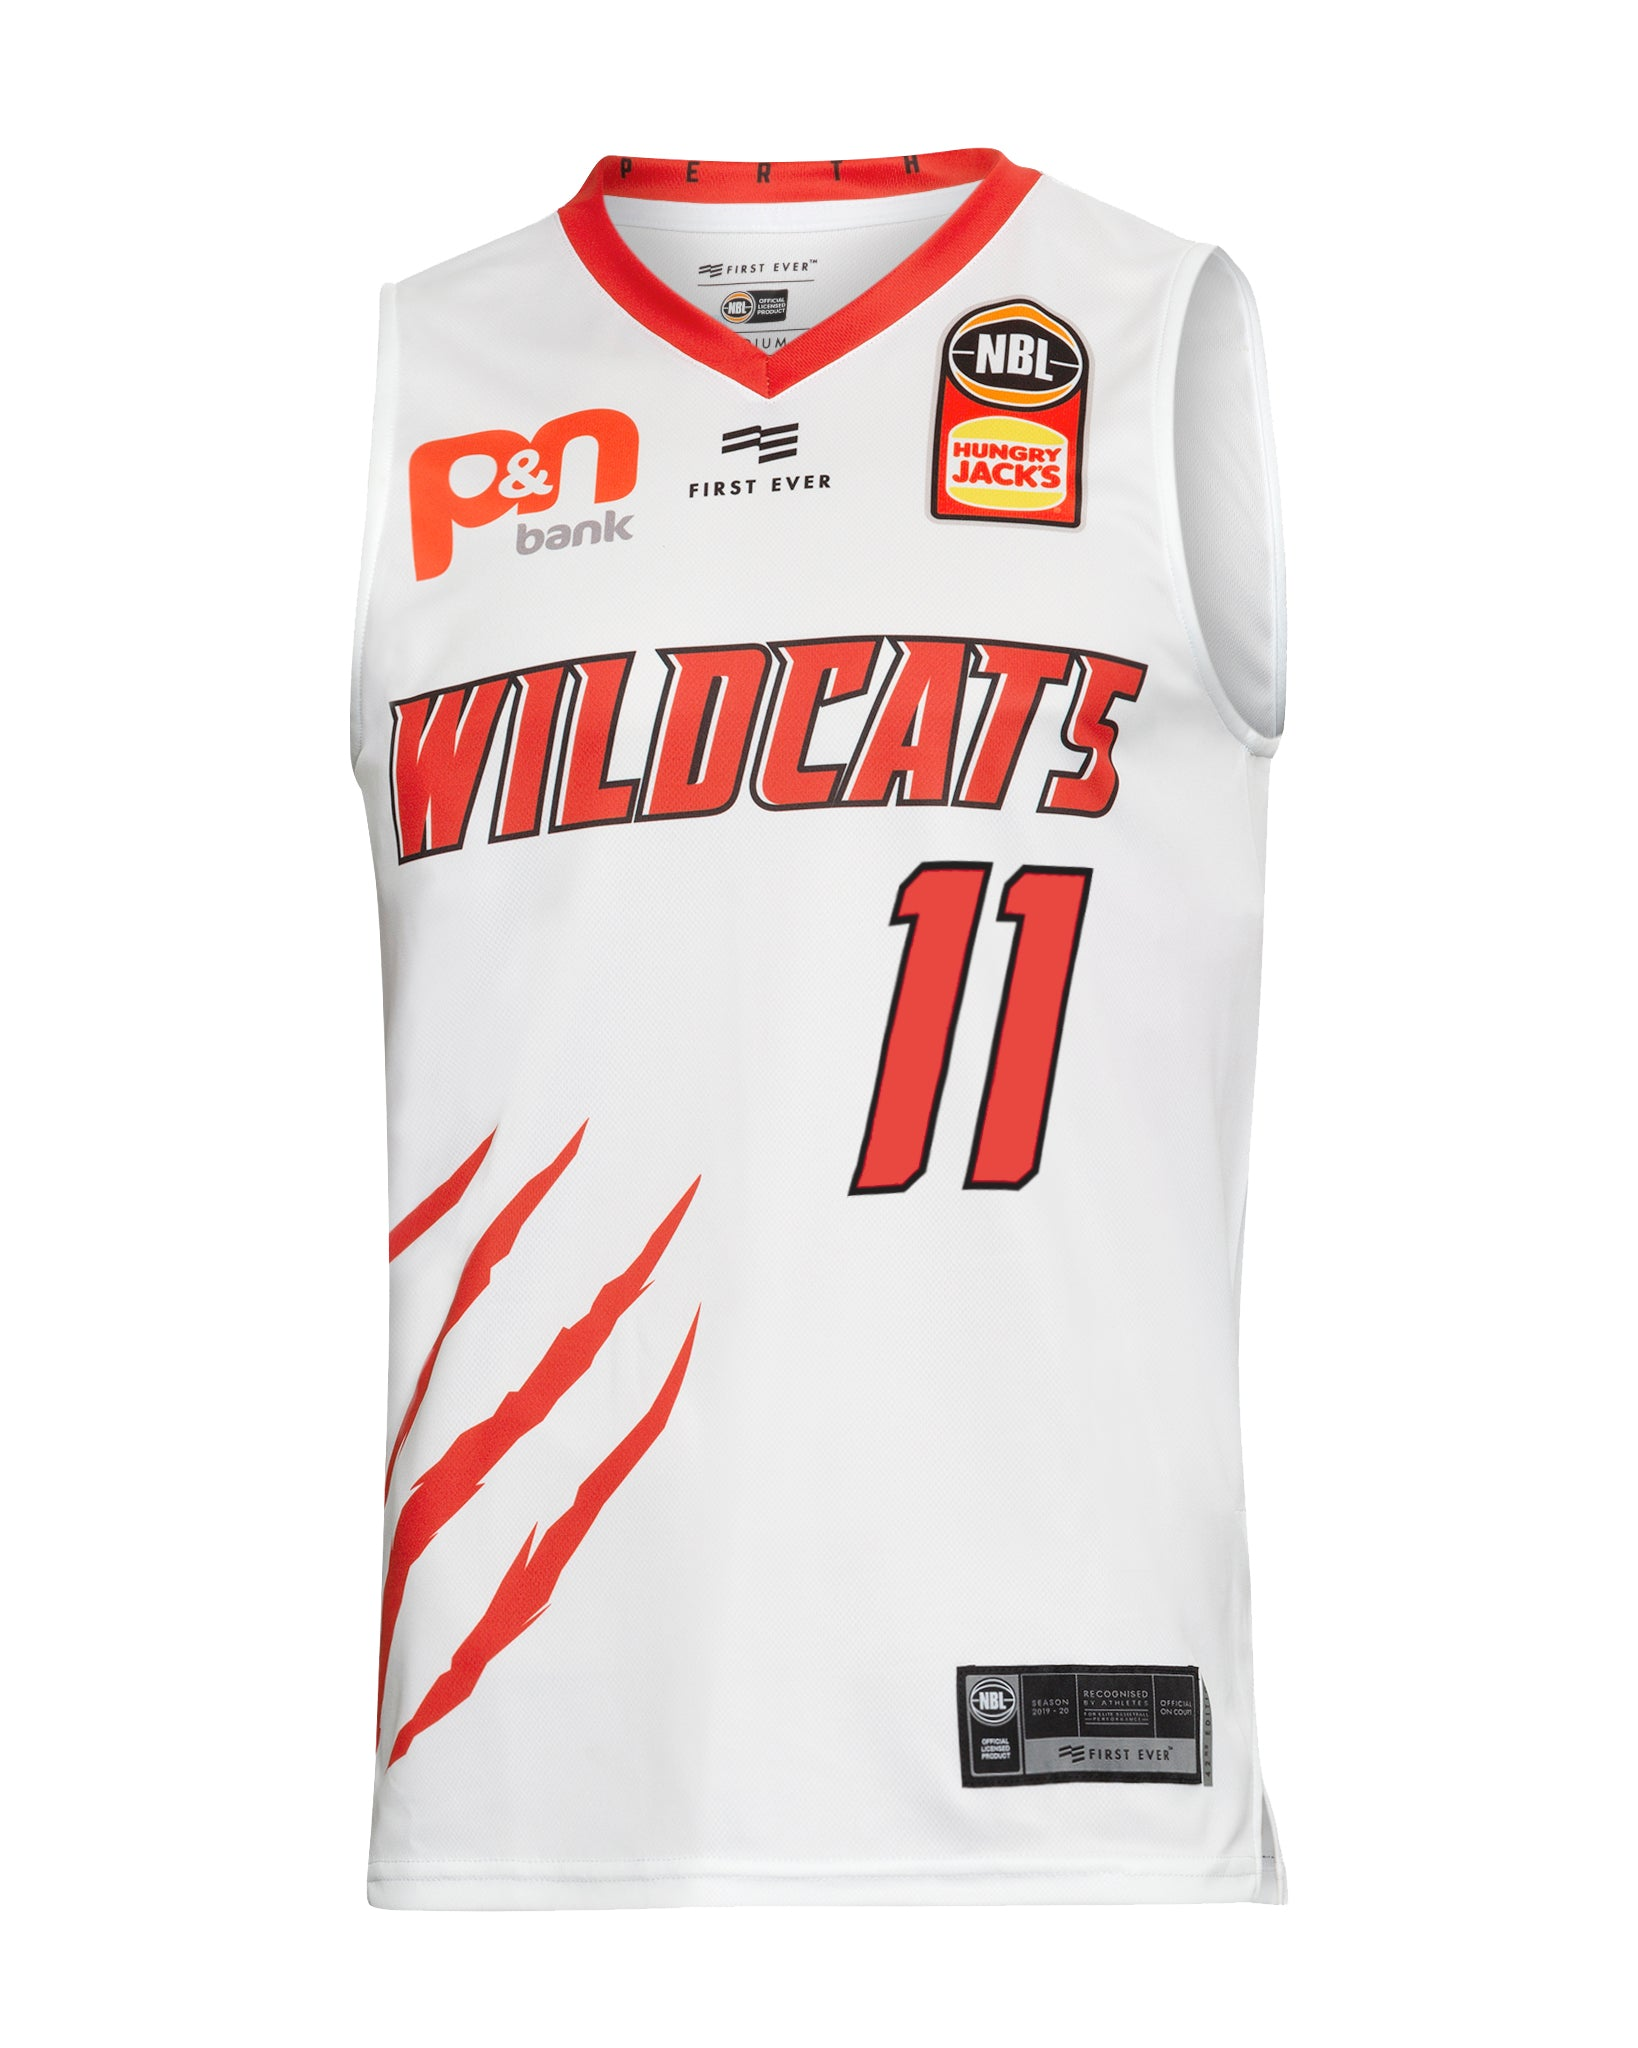 Perth Wildcats 19/20 Authentic Away Jersey - Bryce Cotton